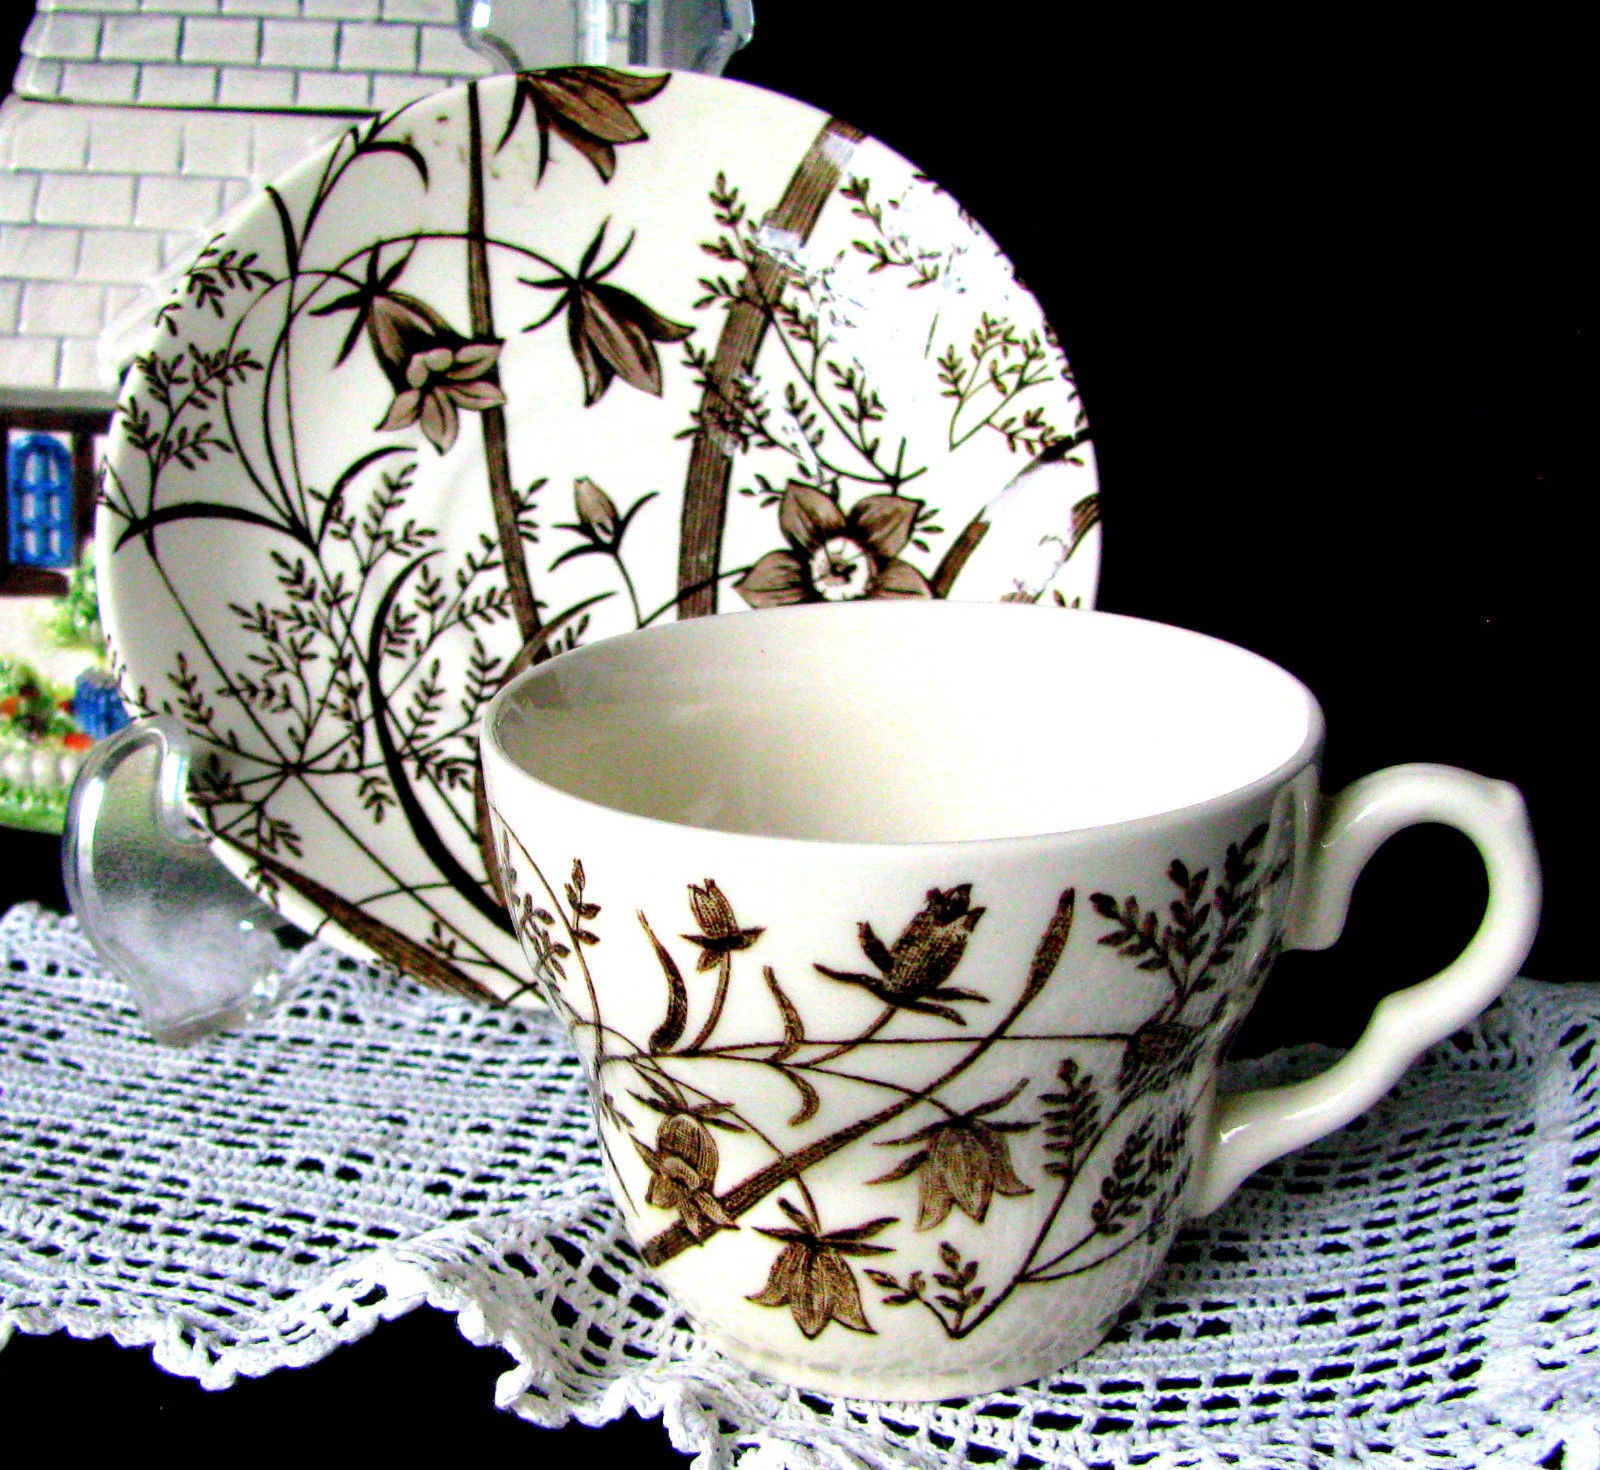 English Ironstone Tableware Staffordshire Brown Transferware Teacup \u0026 Saucer & English Ironstone Tableware Staffordshire and 50 similar items